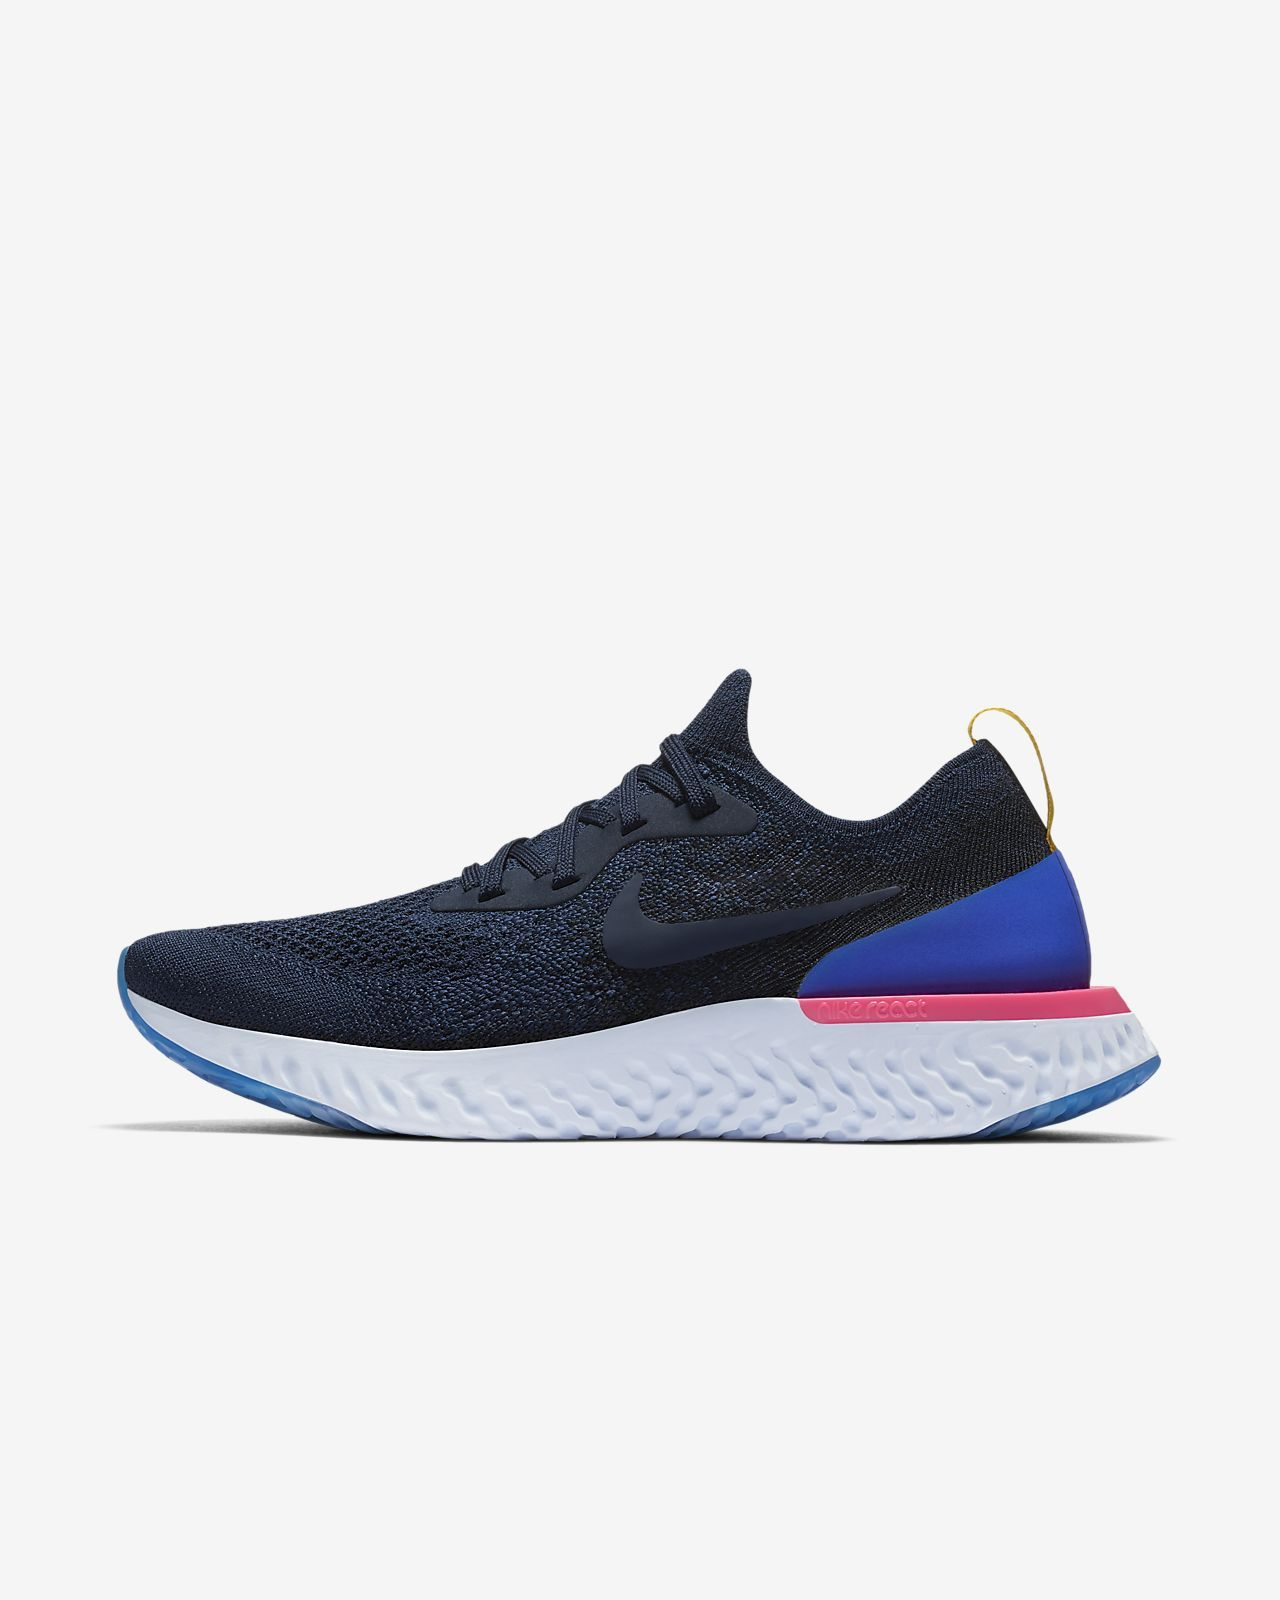 8d7c83c0072f Nike Epic React Flyknit Women s Running Shoe